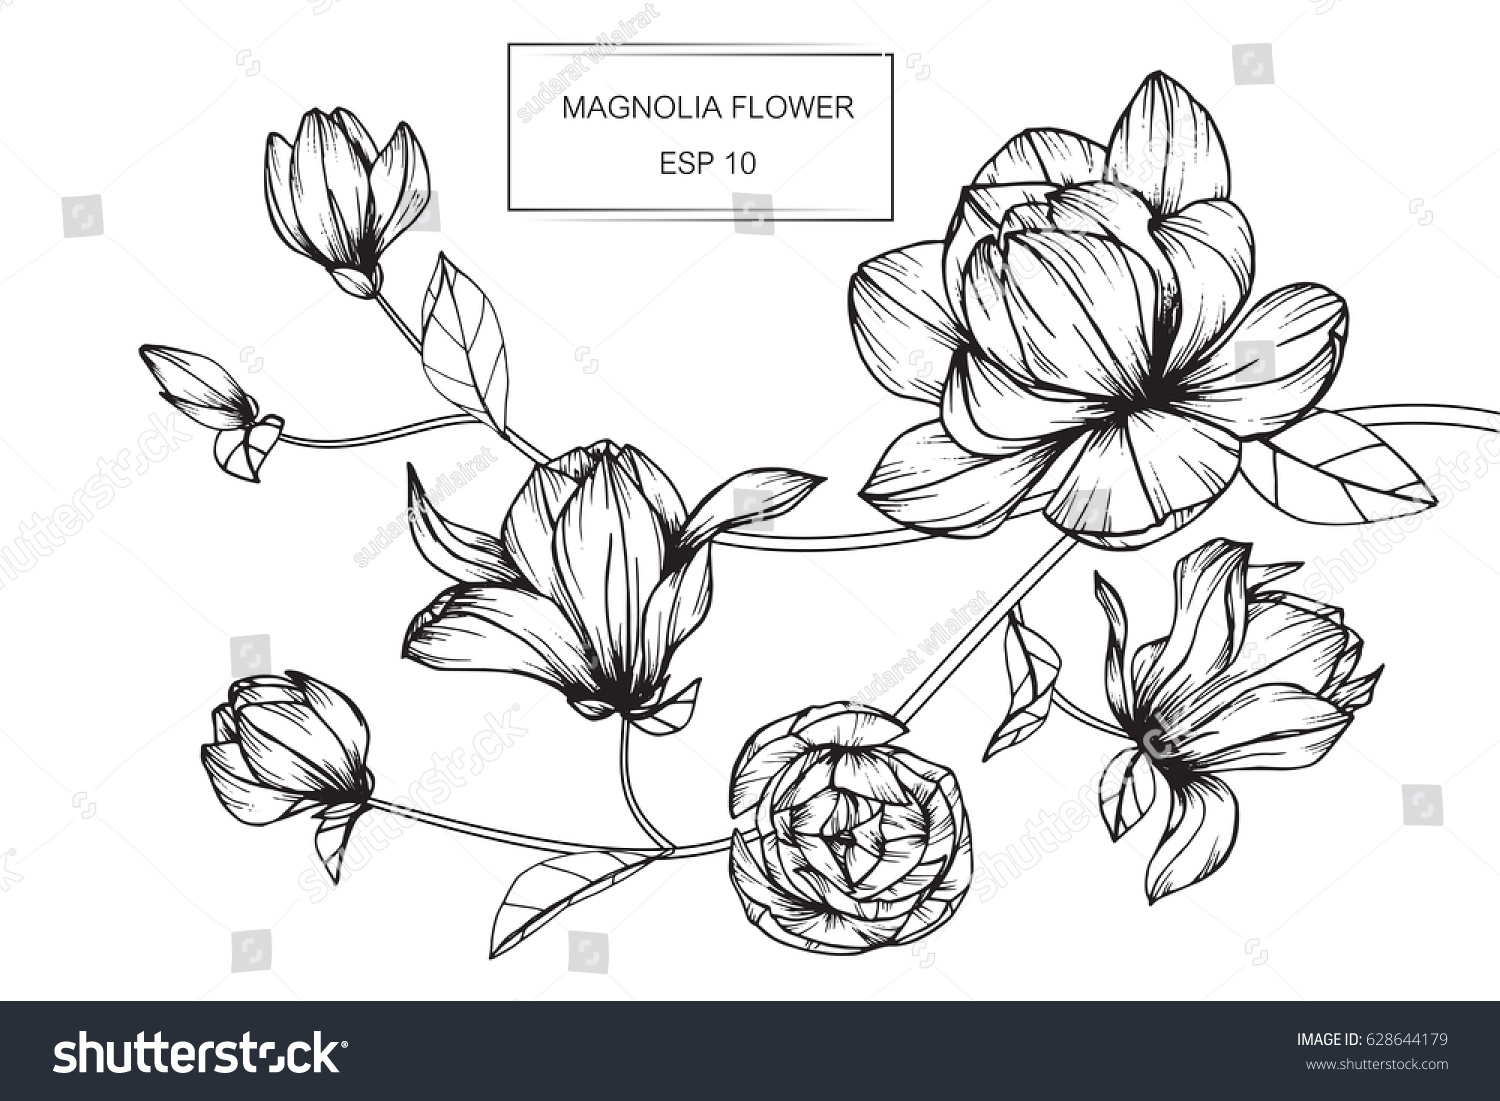 Magnolia Flower Line Drawing : Magnolia flowers drawing sketch lineart on stock vector